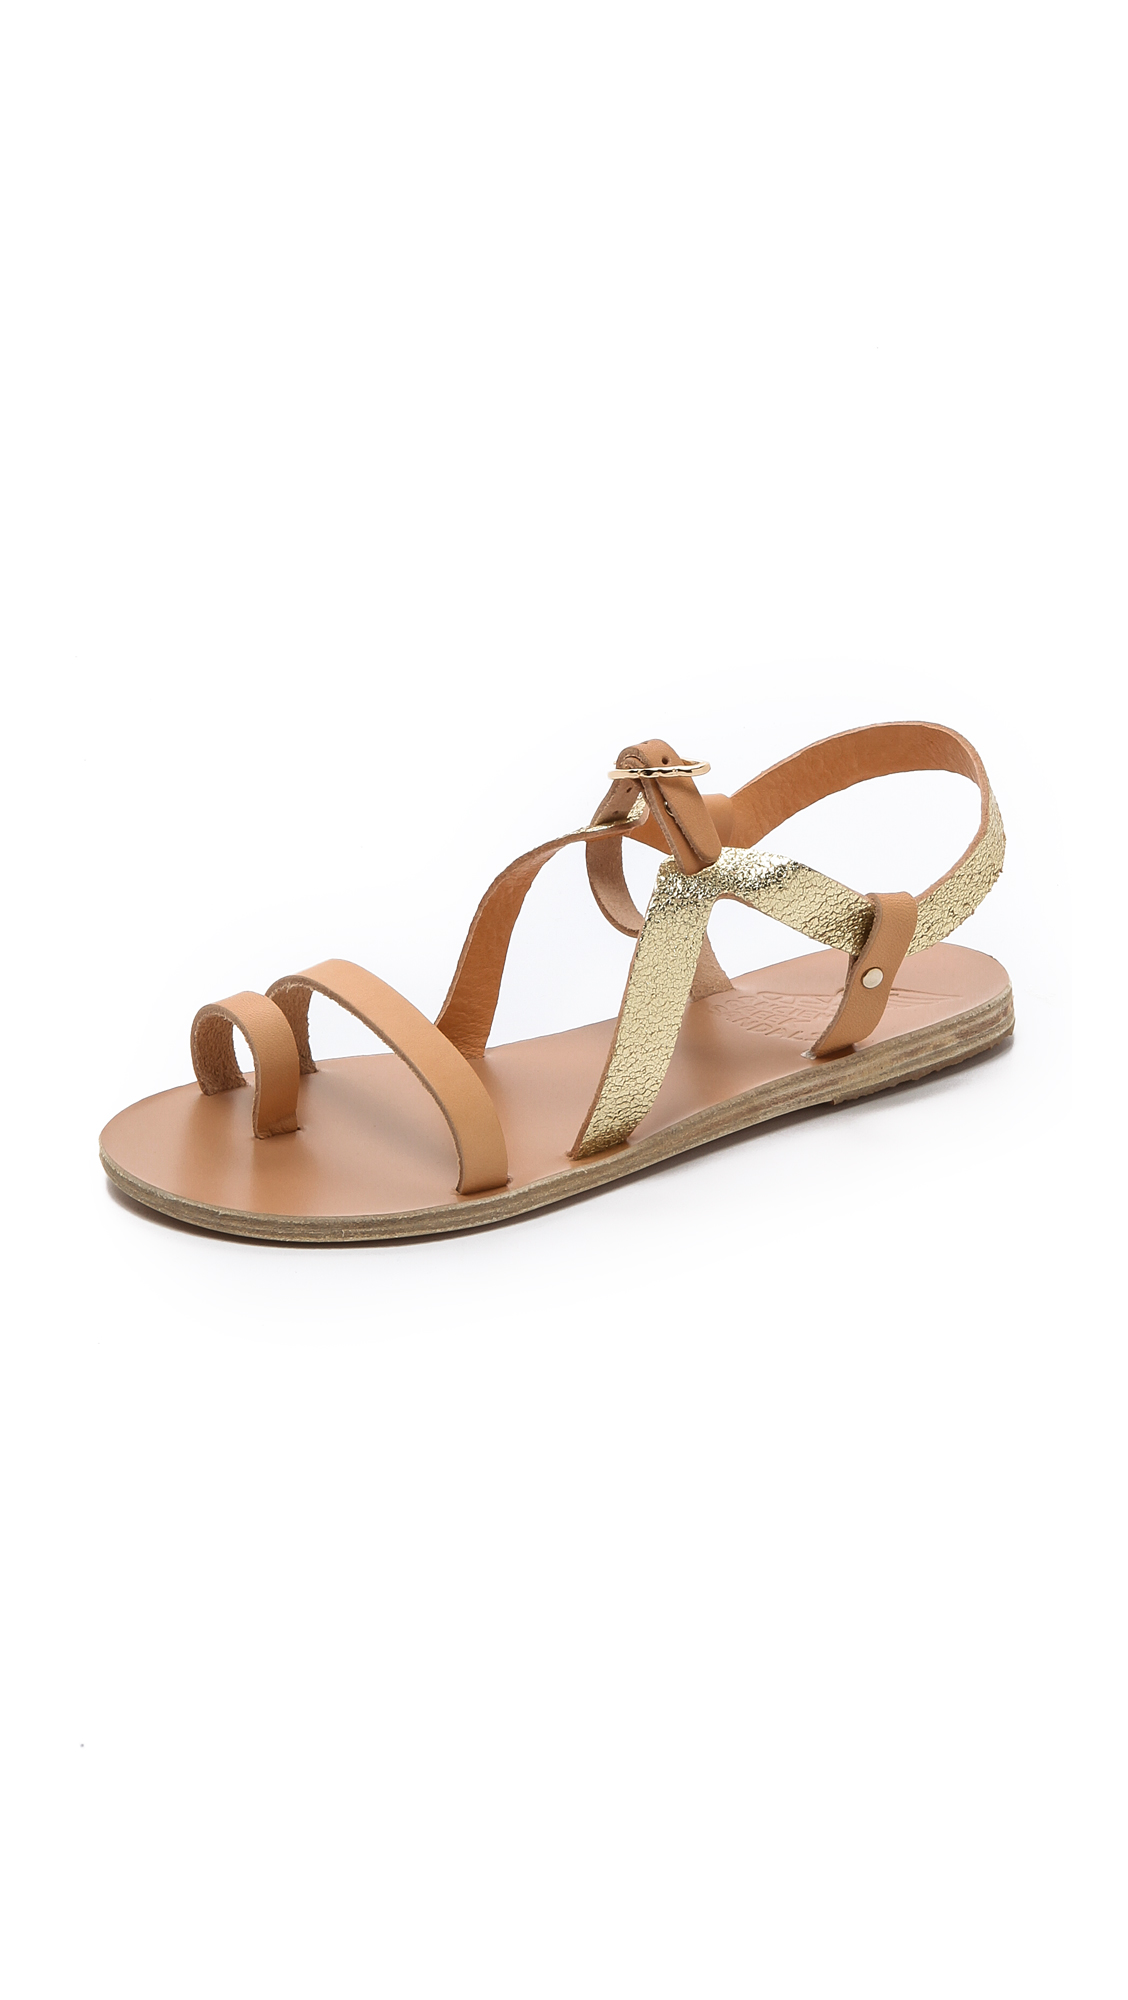 Lyst Ancient Greek Sandals Phoebe Flat Sandals In Natural